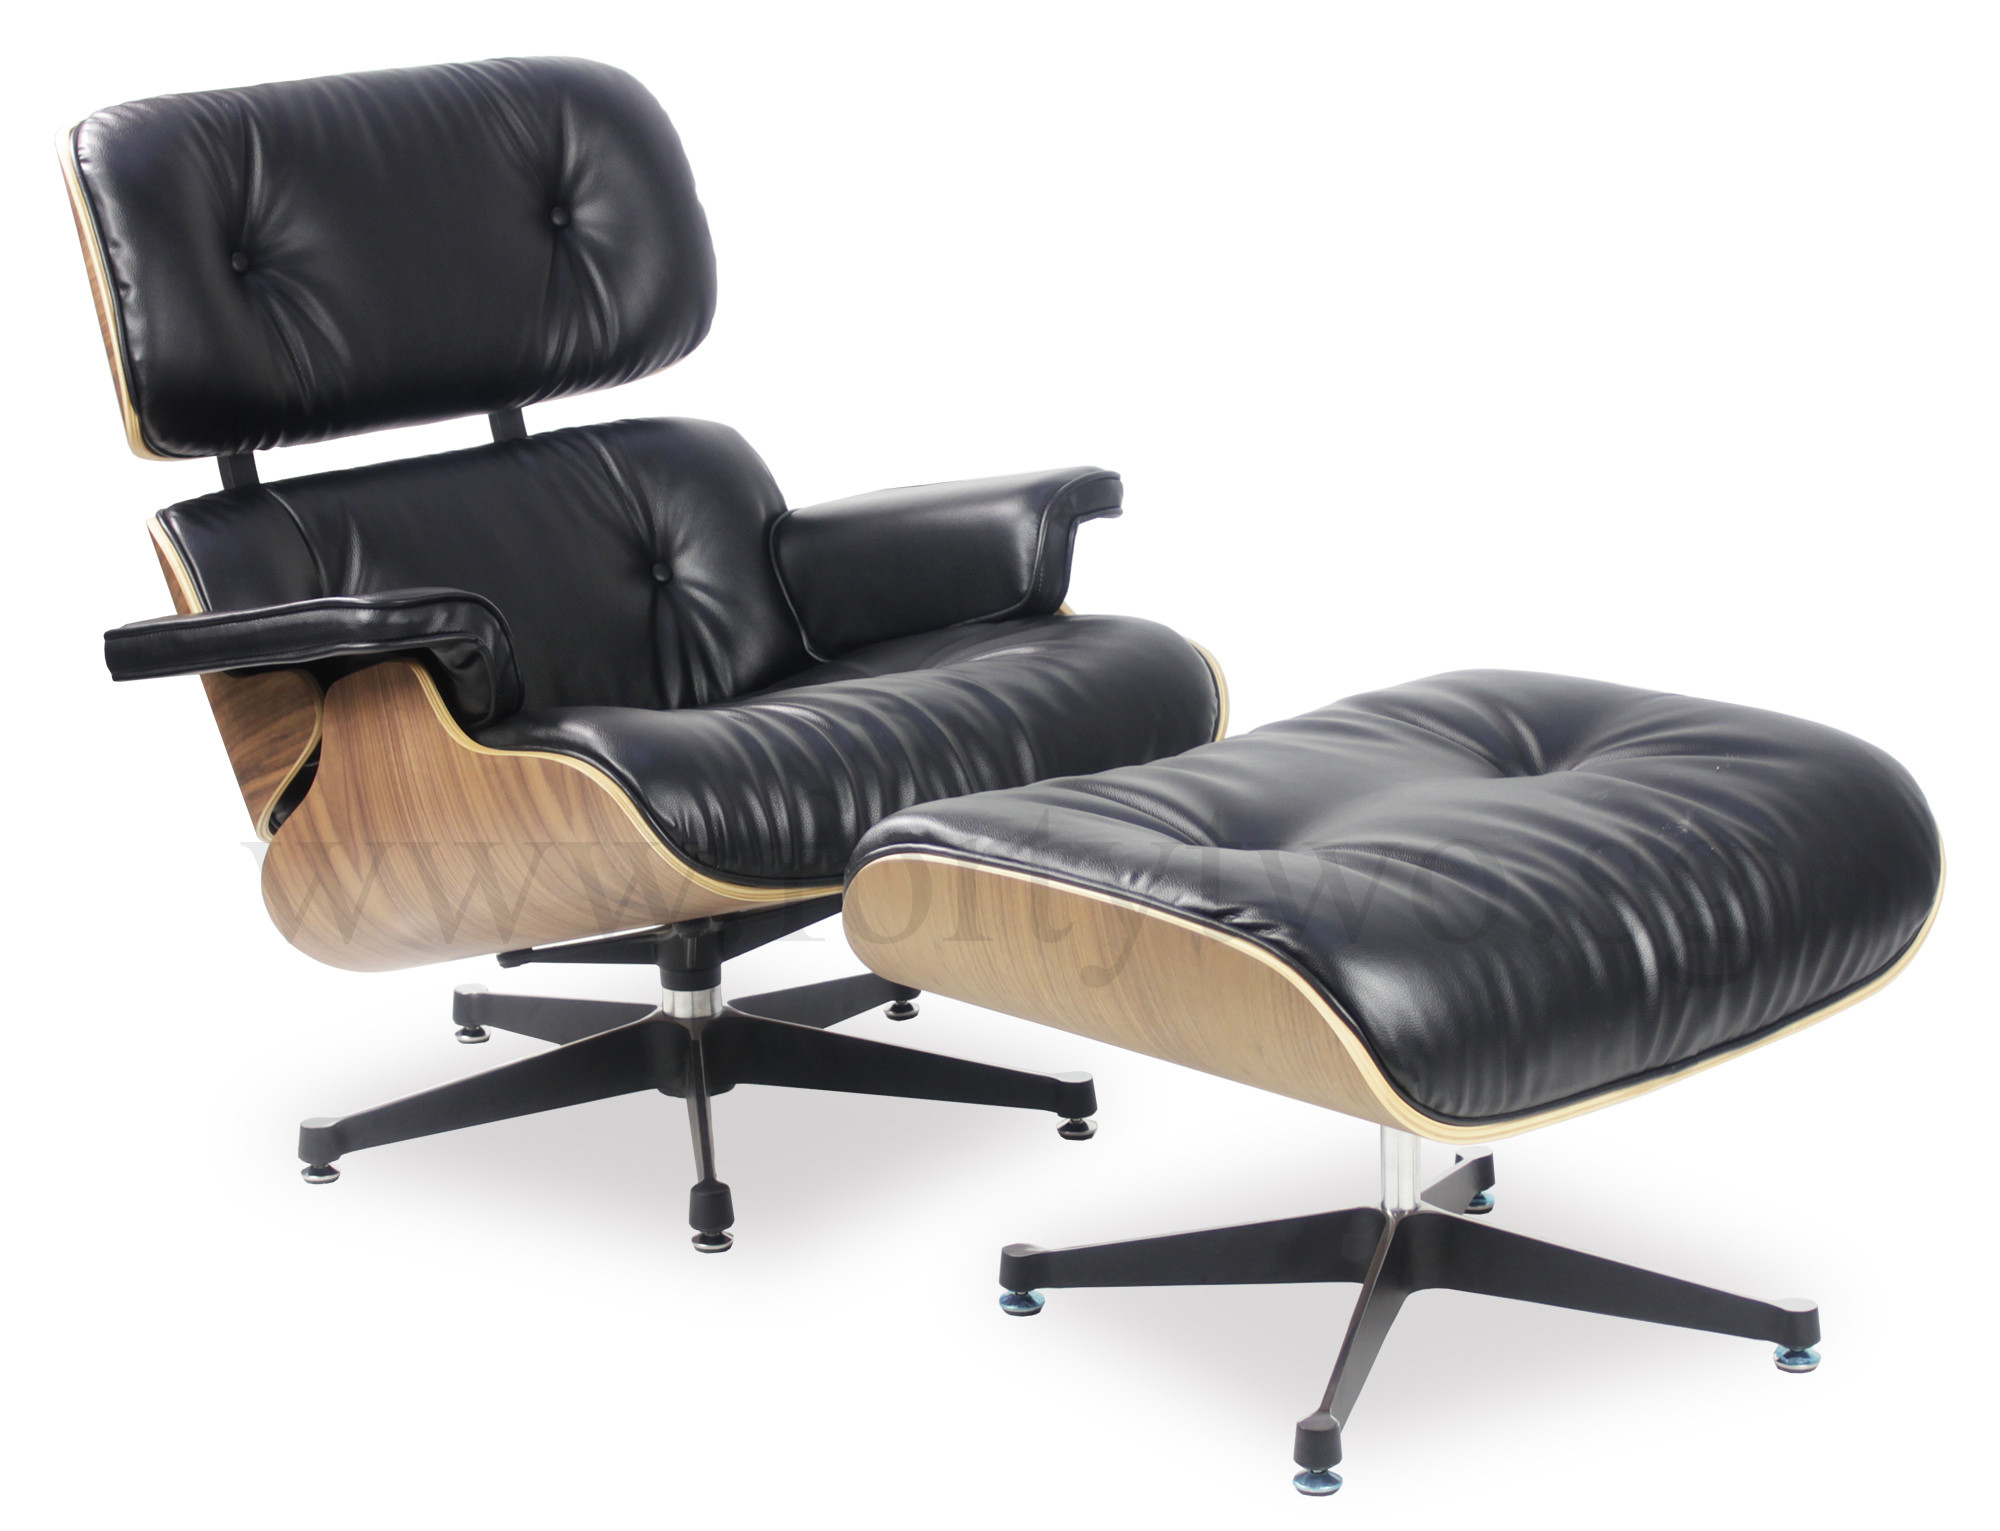 Designer replica eames lounge chair black furniture for Eames chair fake